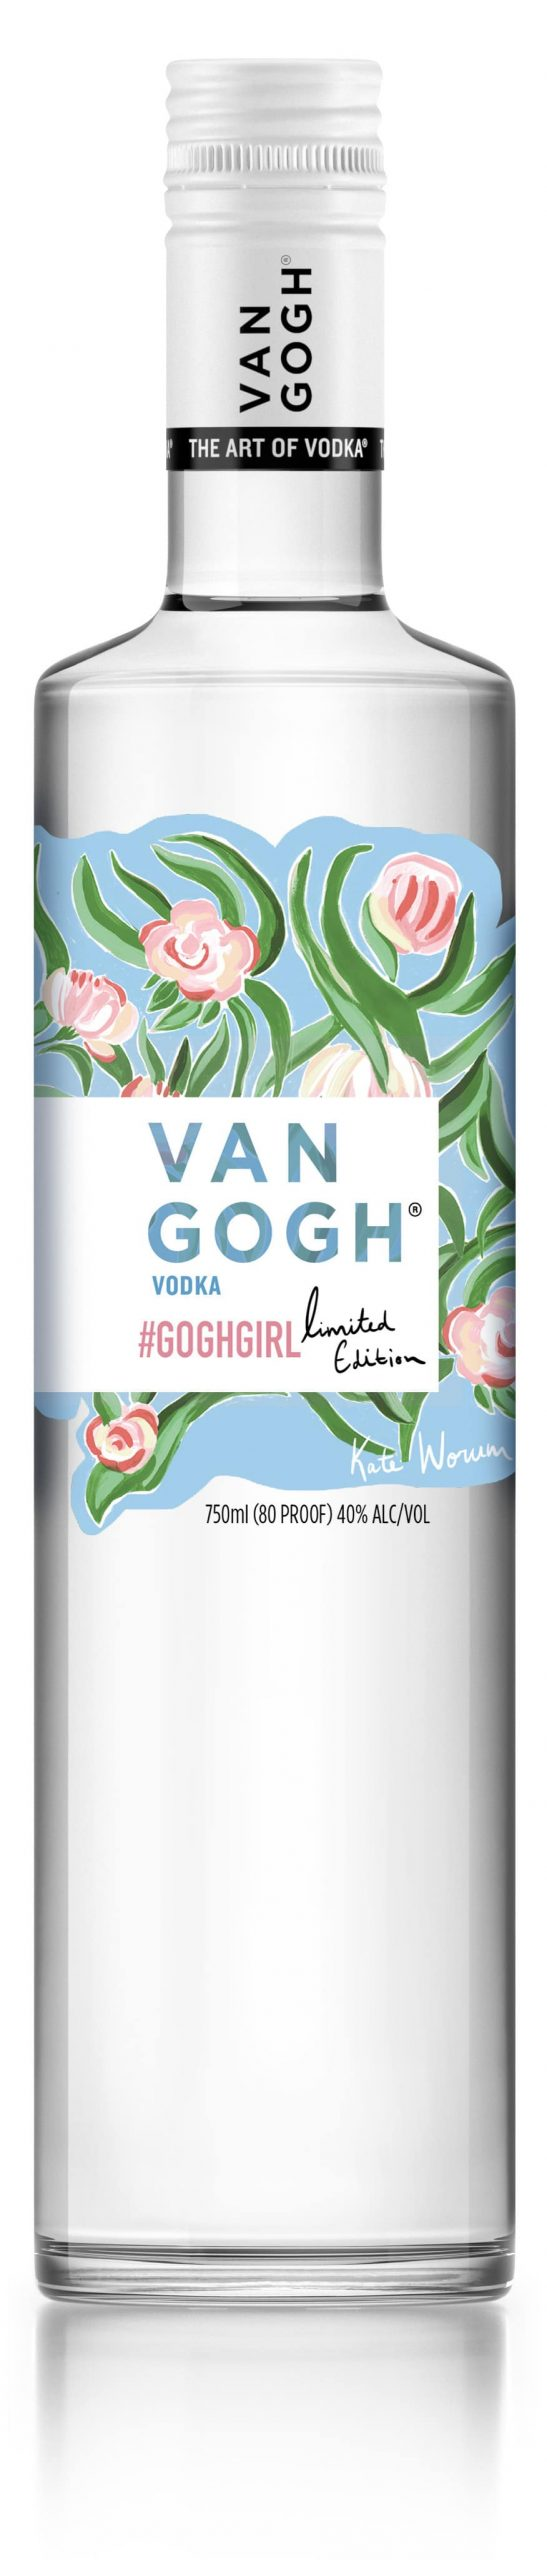 Van Gogh Vodka Releases Special Edition Bottle In Honor Of International Women's Day photo